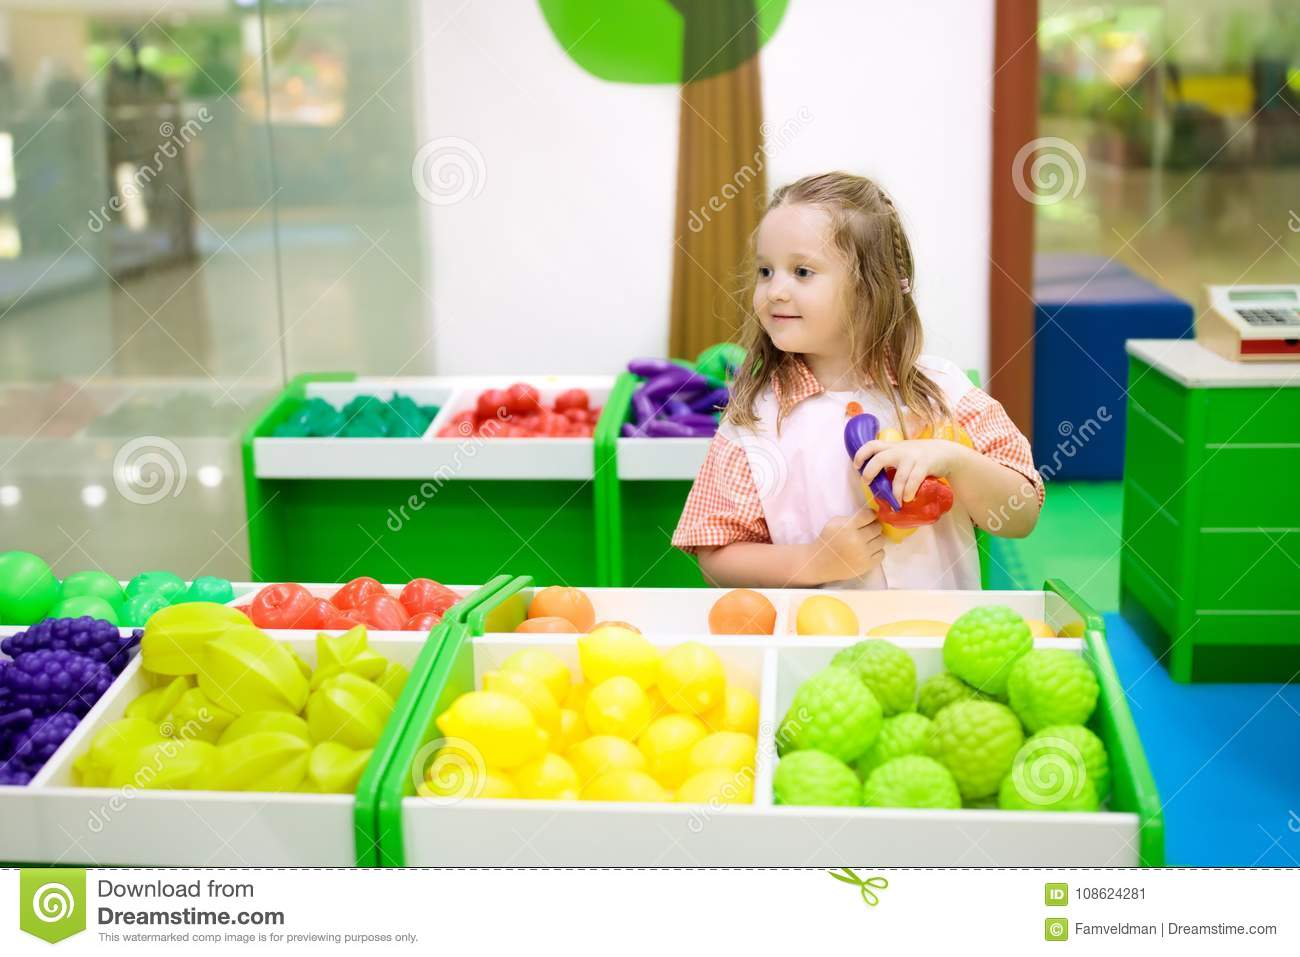 Kids Play At Toy Supermarket Or Grocery Store. Stock Image ...